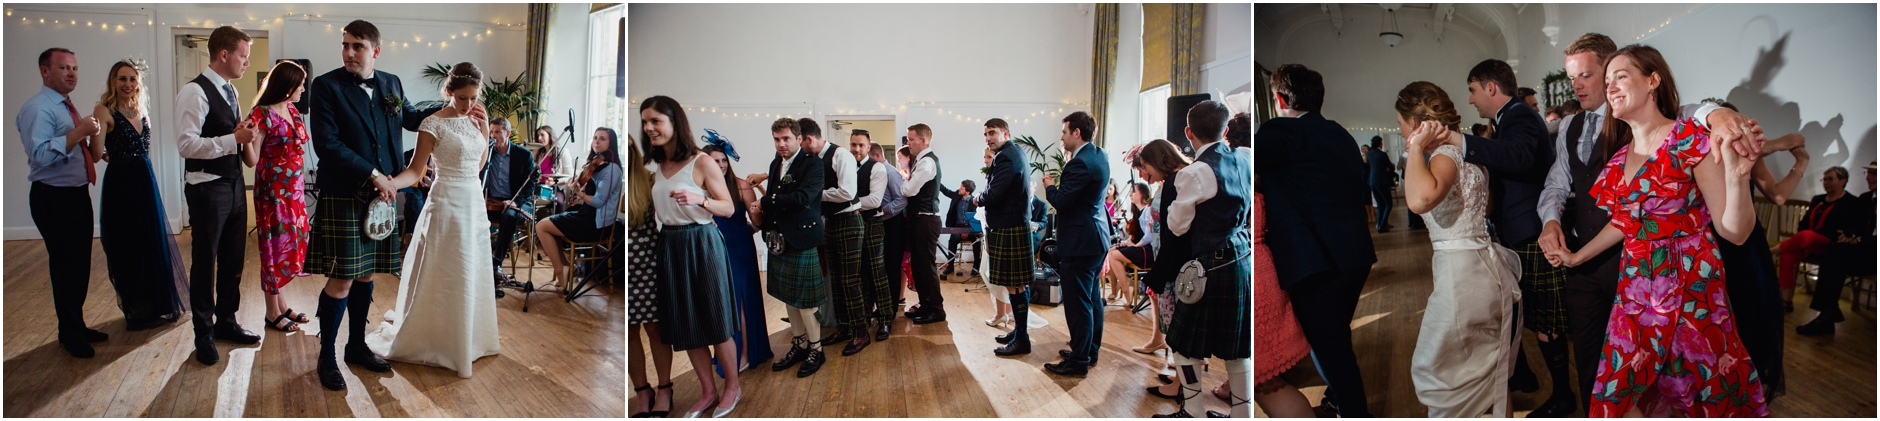 botanics edinburgh wedding photos